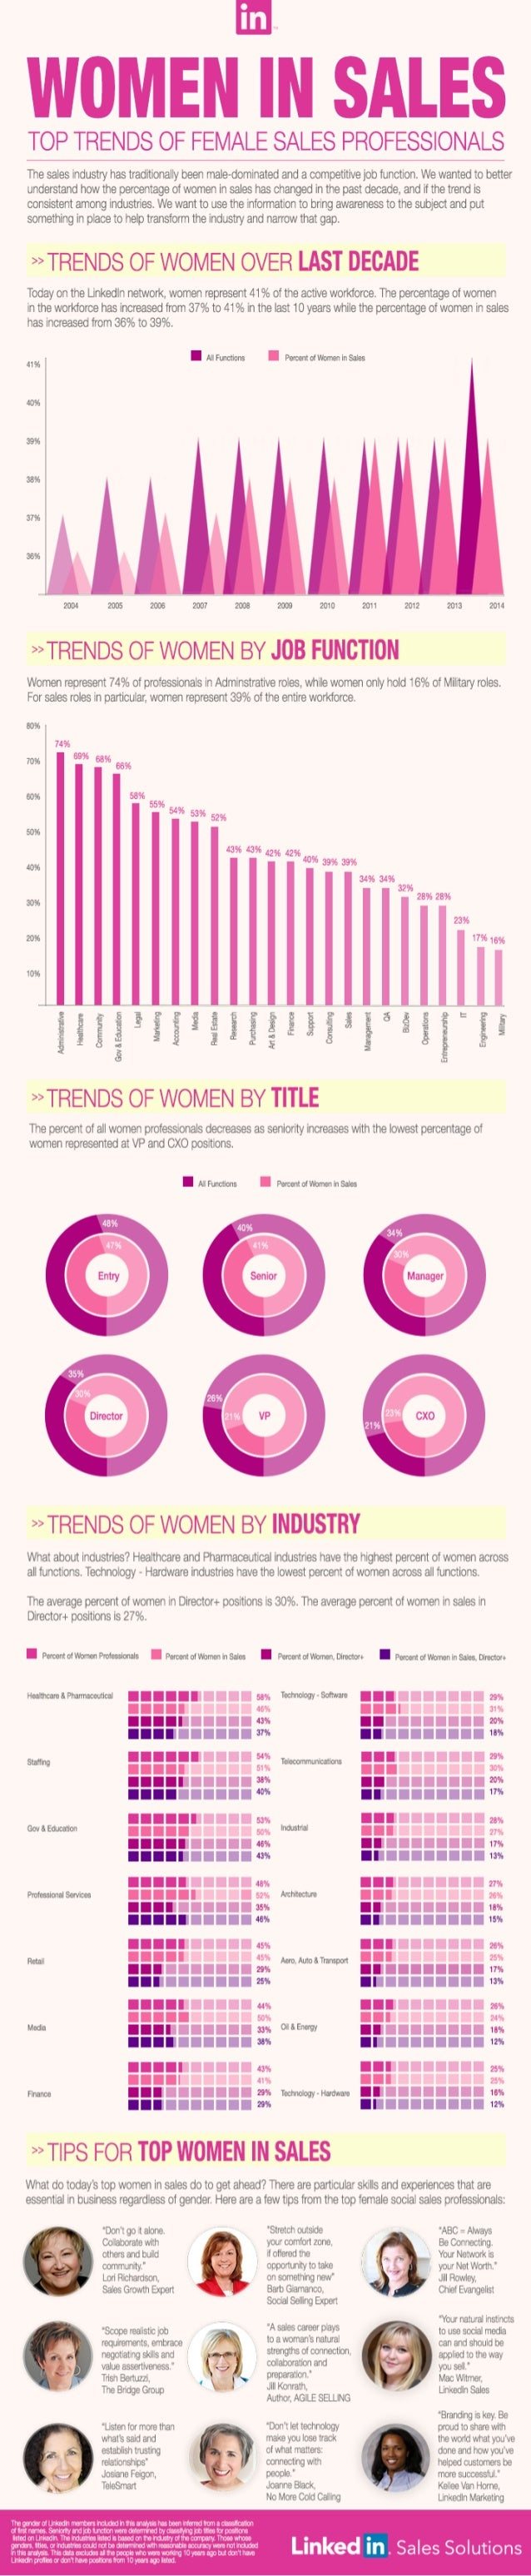 Trends Of Women In Sales - By LinkedIn